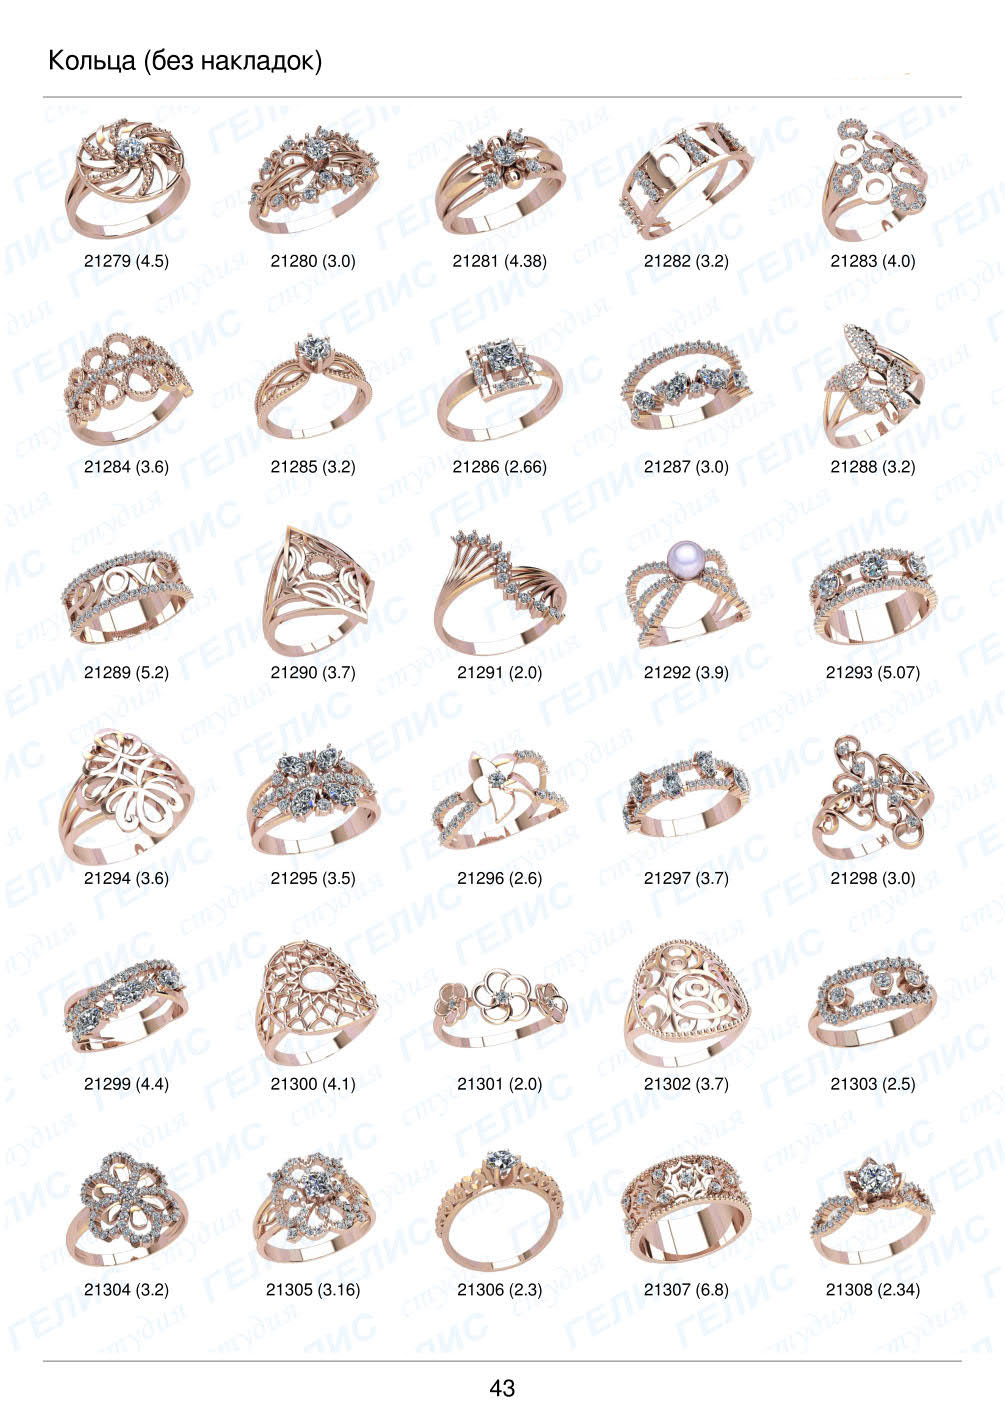 catalog_02_Rings (without overlays)_43